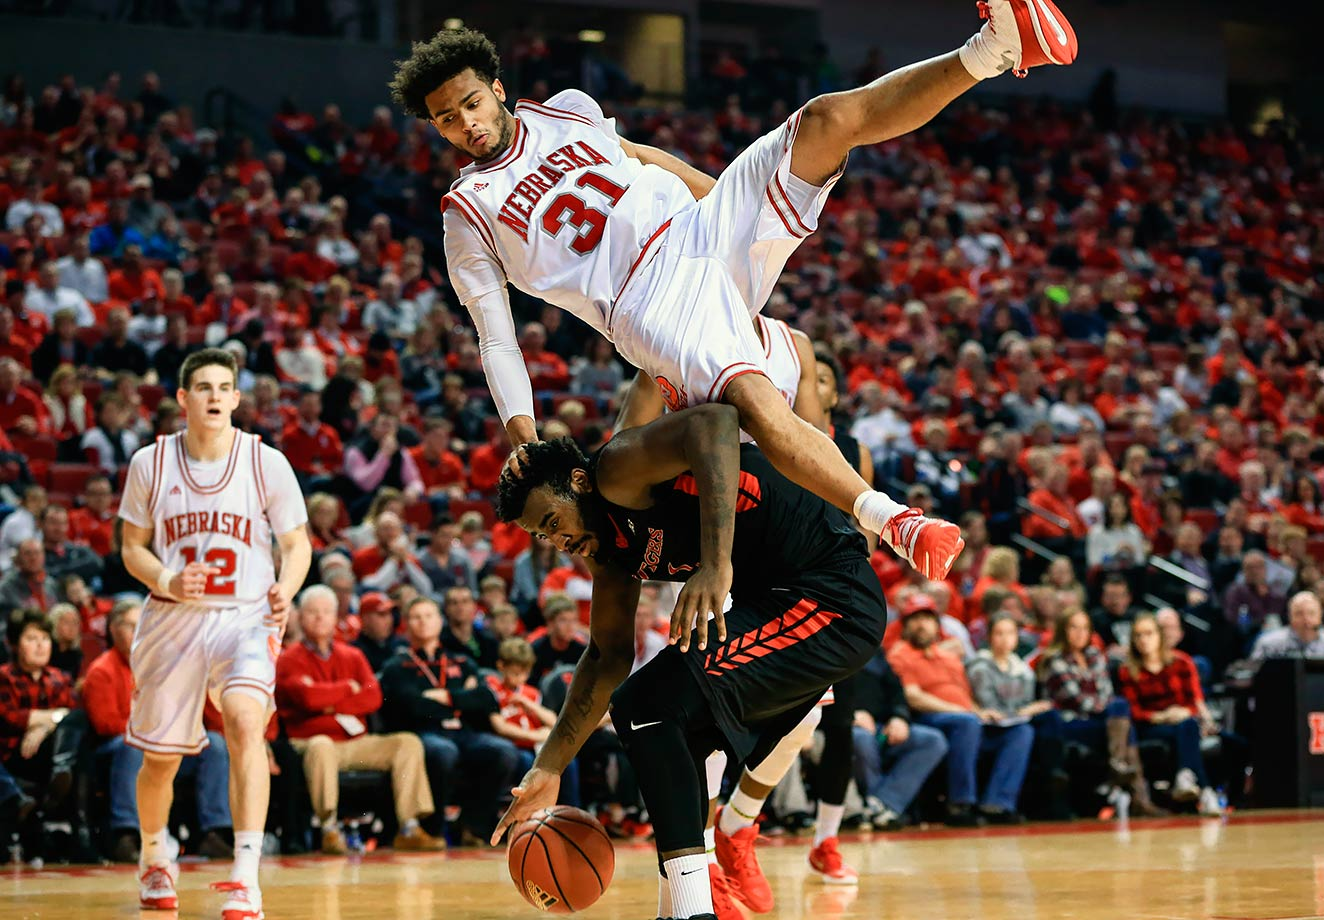 Shavon Shields rolls off the back of D.J. Foreman during a game between Nebraska and Maryland at Pinnacle Bank Arena in Lincoln, Neb.